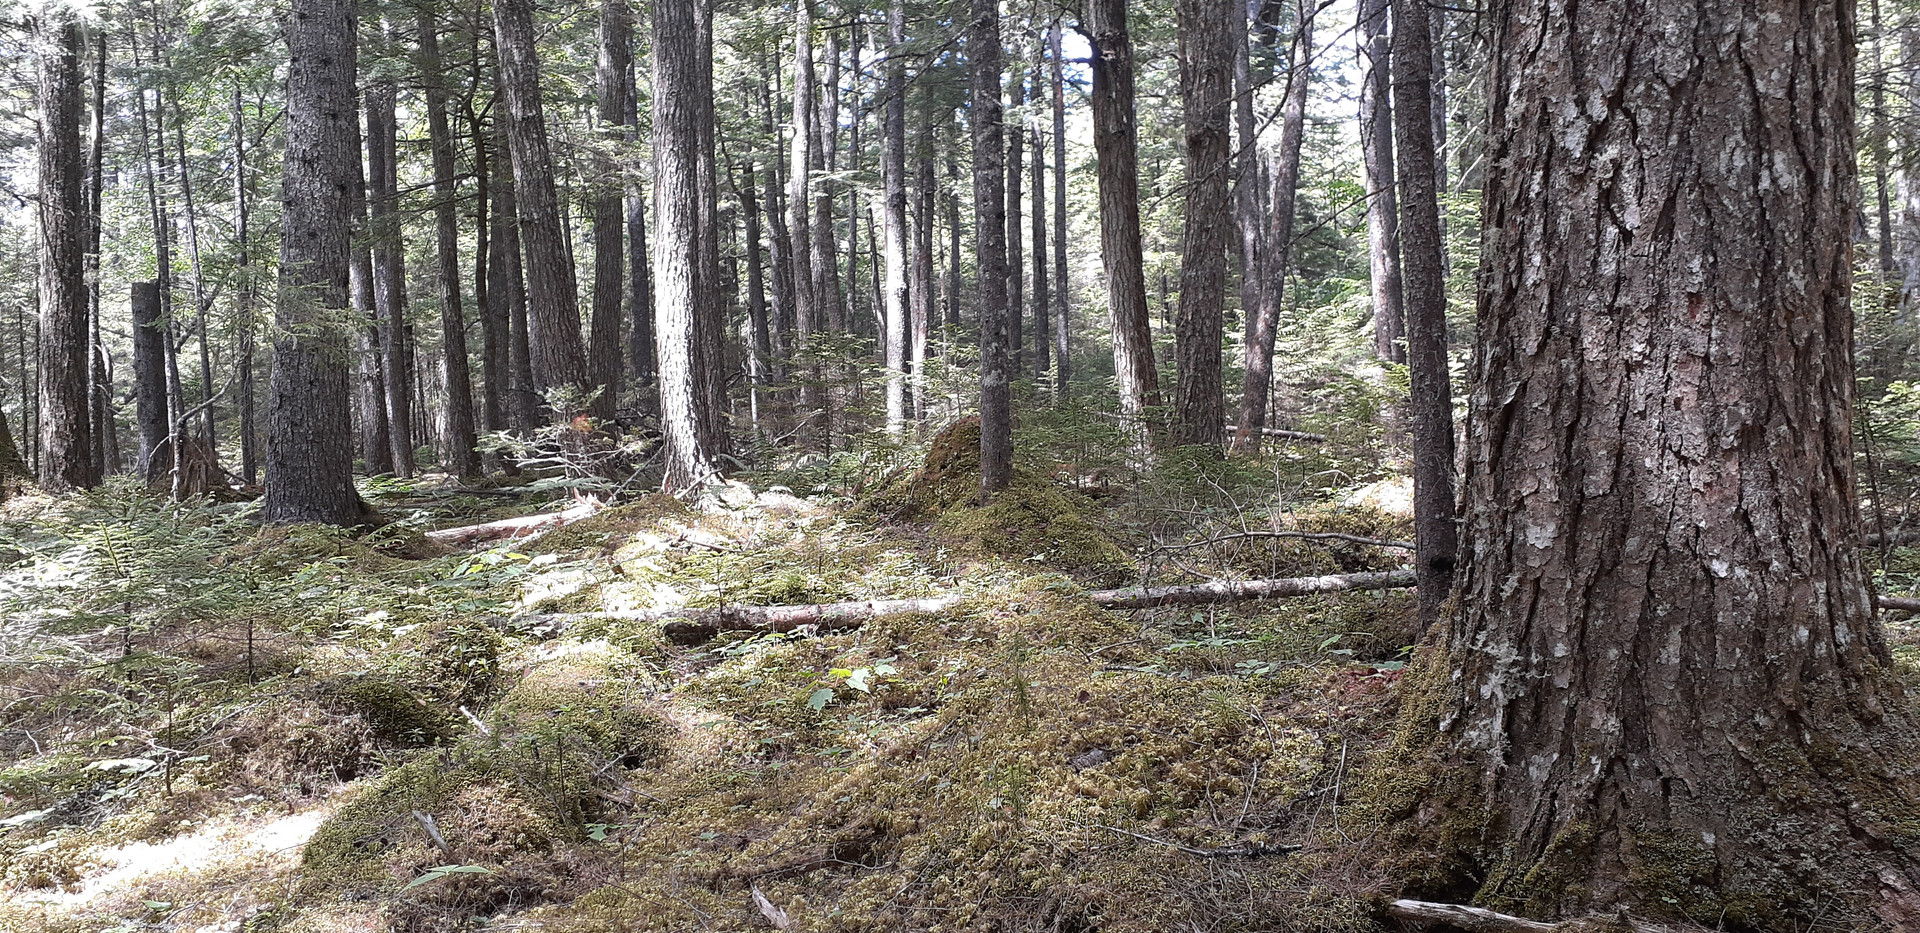 A coniferous stand of old growth forest